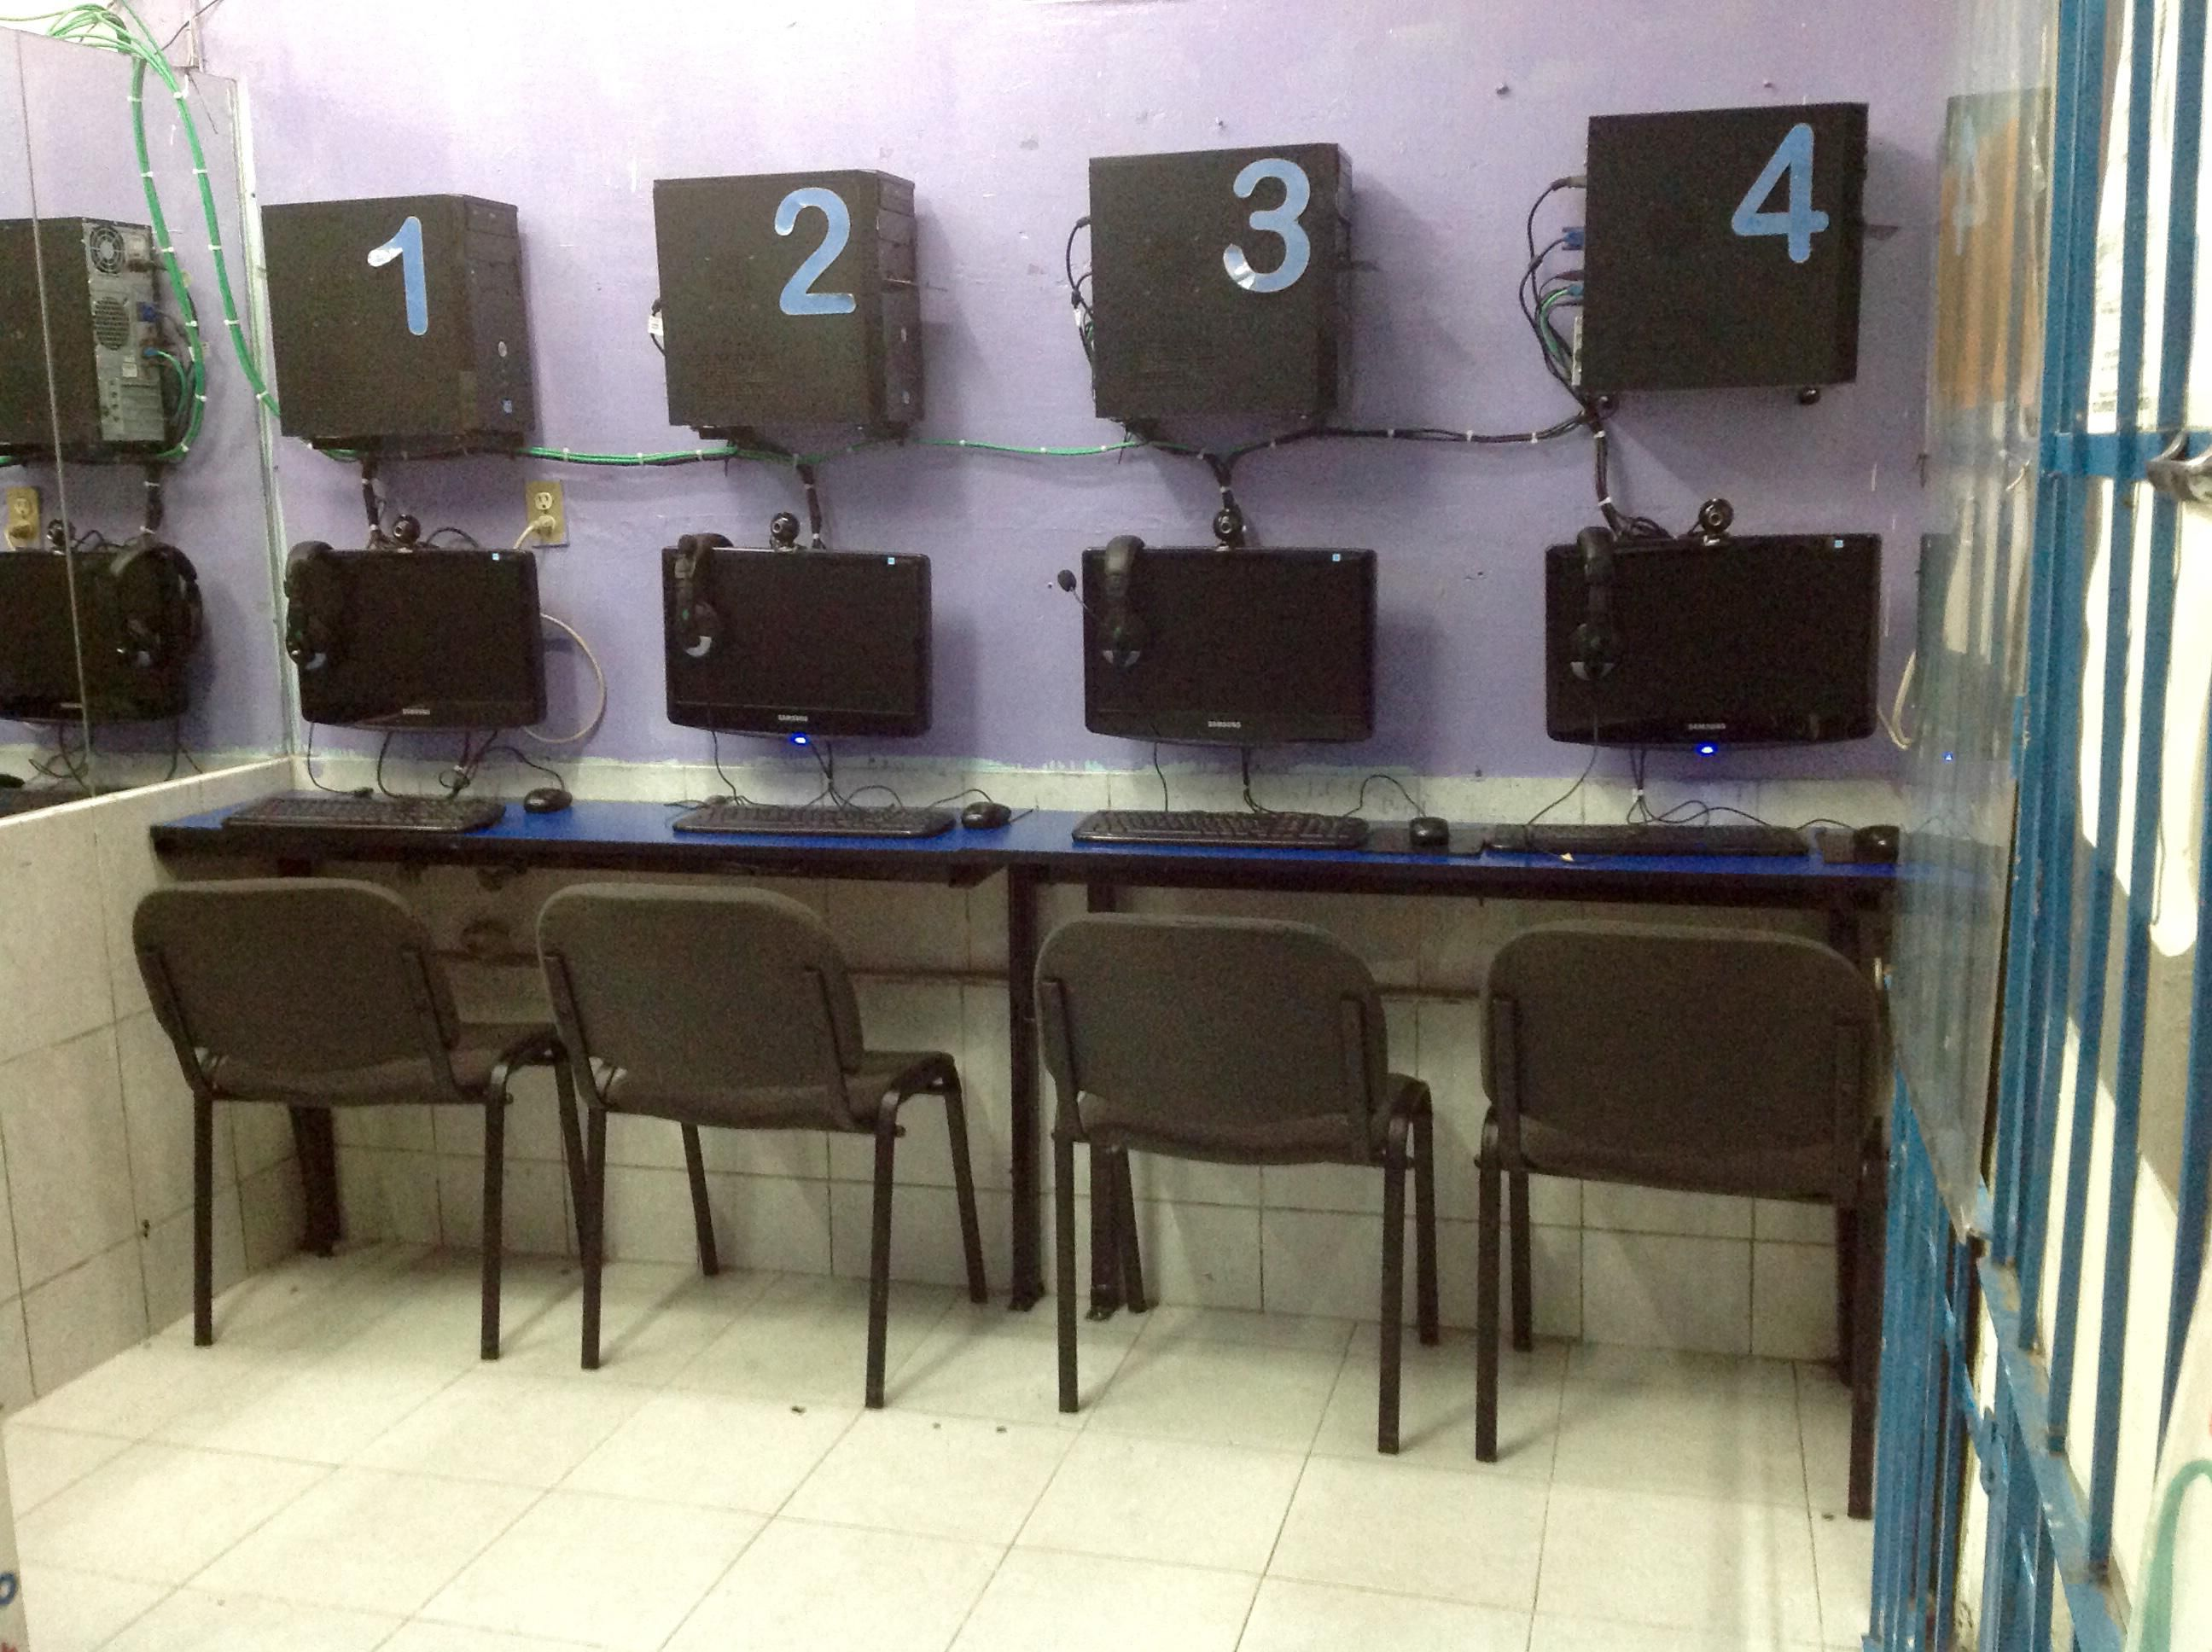 Muebles Para Ciber Cafe En Monterrey_20170719093804 Vangion Com # Muebles Cafe Internet